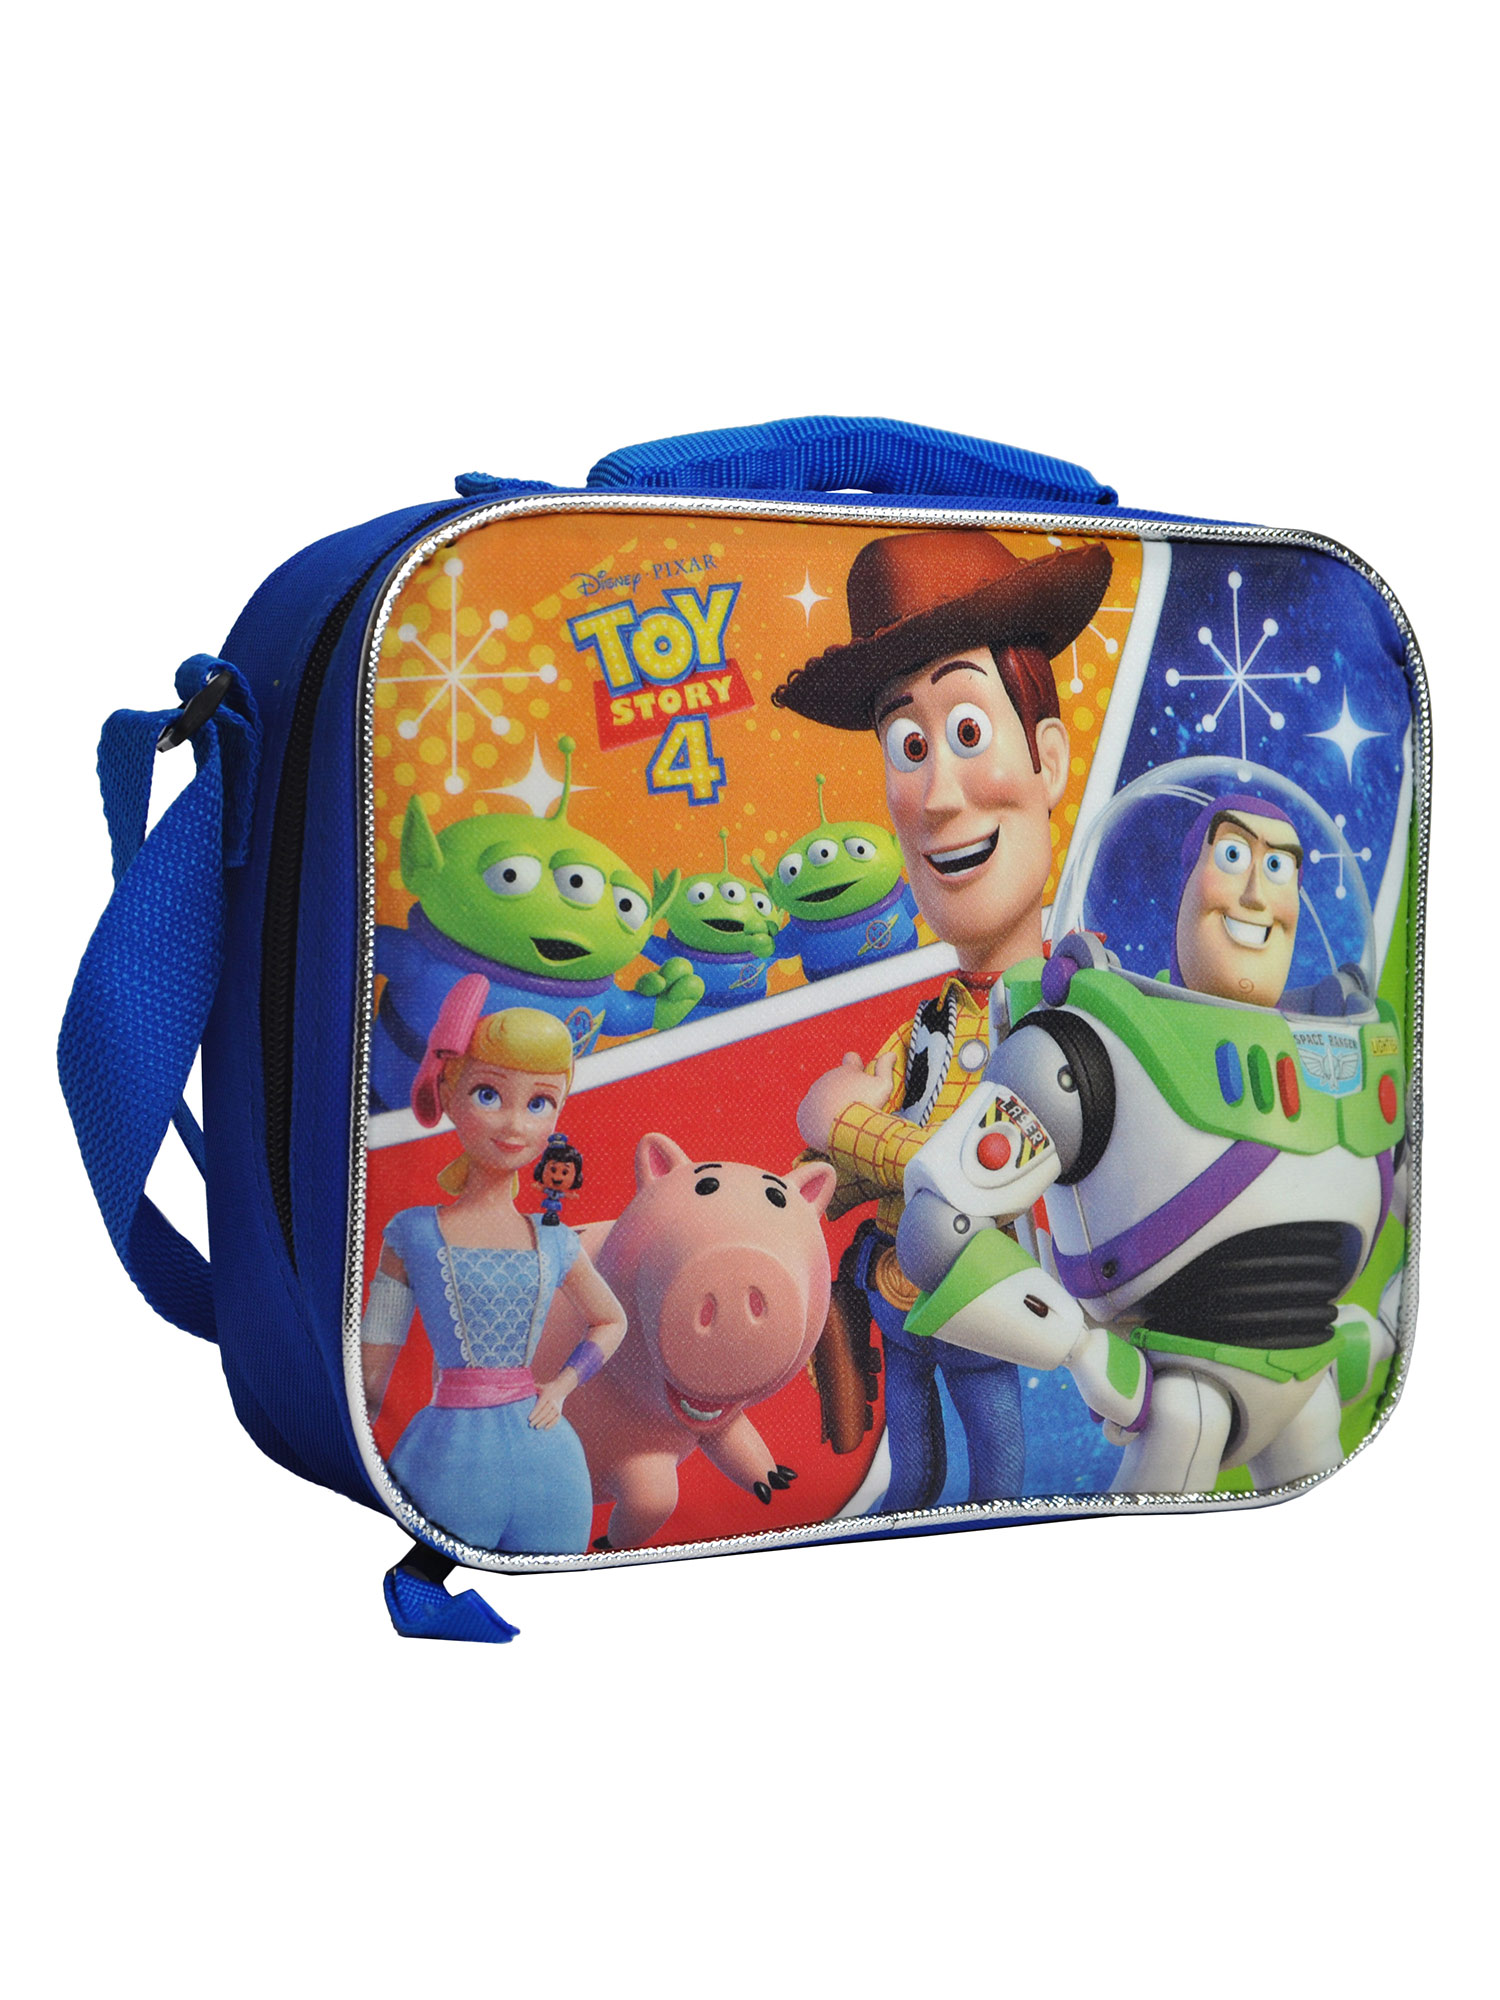 Boys Toy Story 4 Insulated Lunch Bag Shoulder Strap Aliens Hamm Woody Buzz